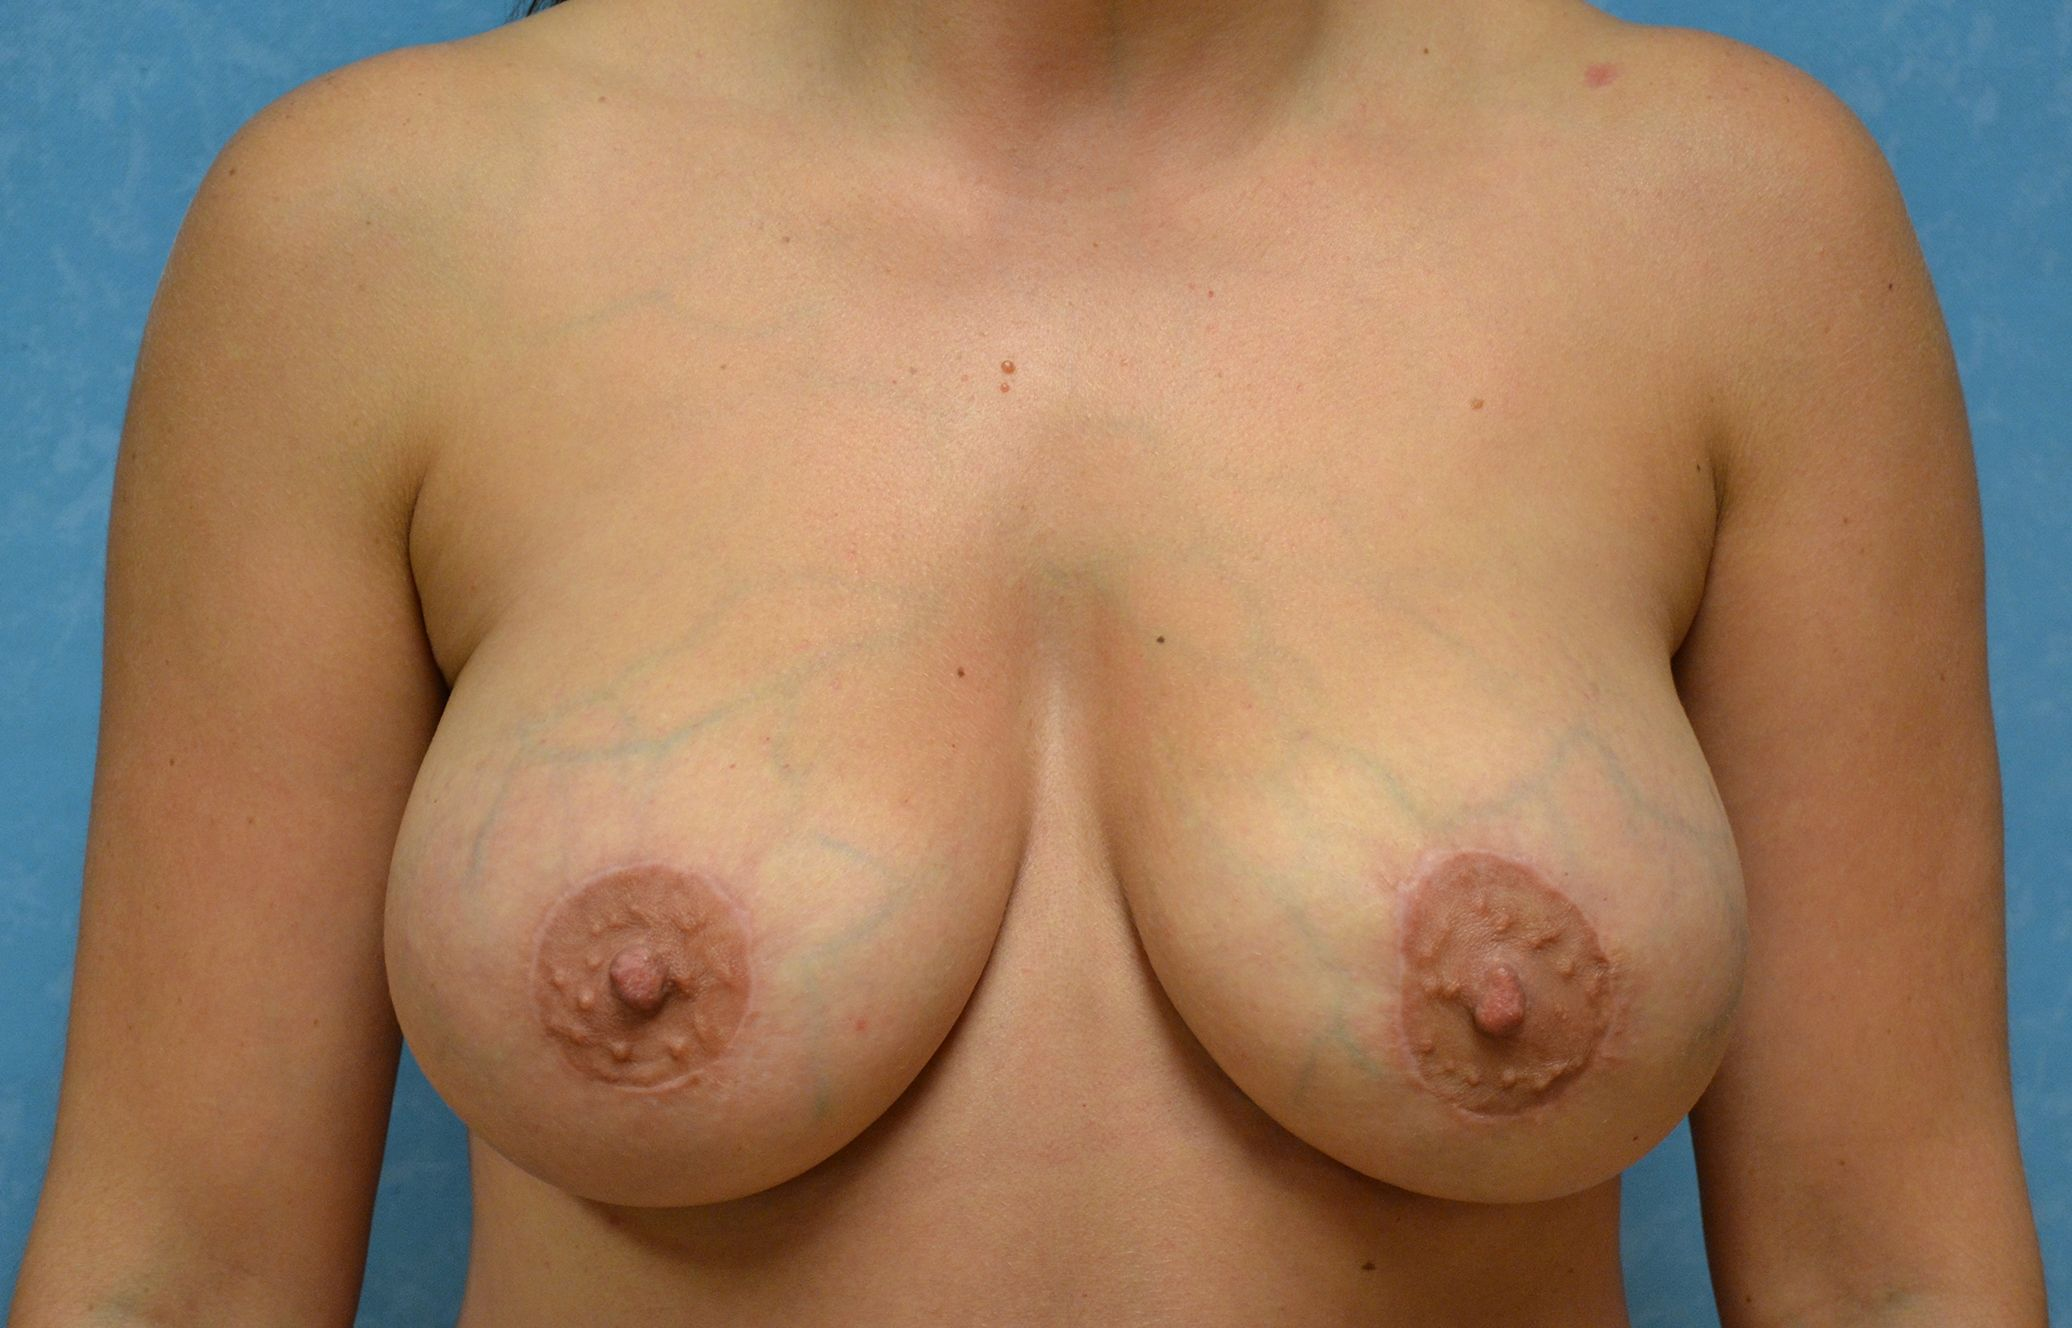 A patient after breast lift surgery.